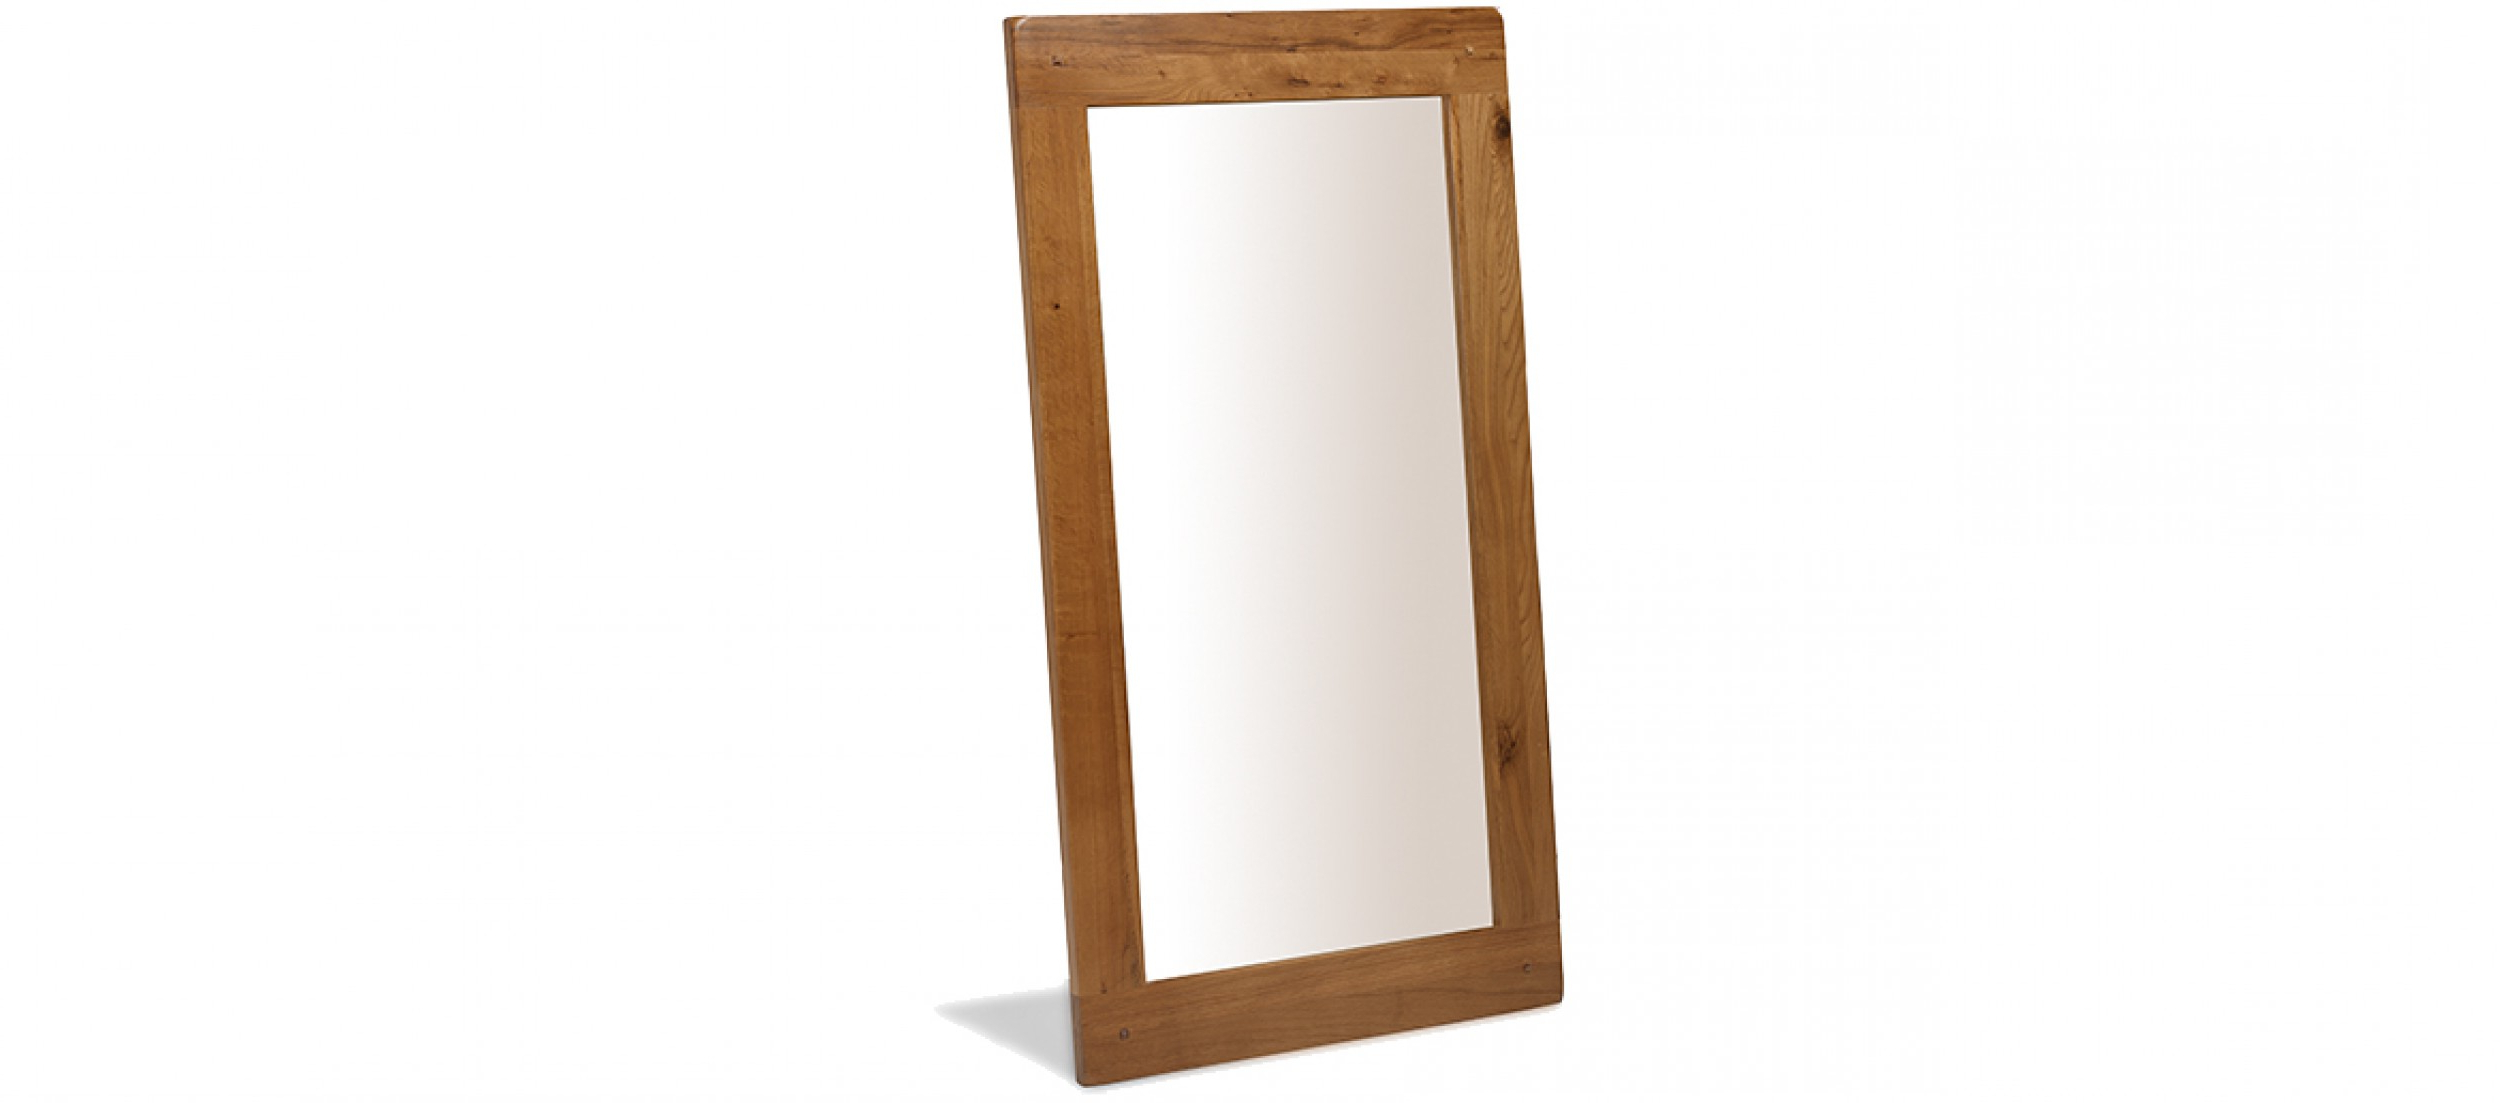 Oak Framed Wall Mirrors Intended For Newest Rustic Oak Wall Mirror (View 17 of 20)